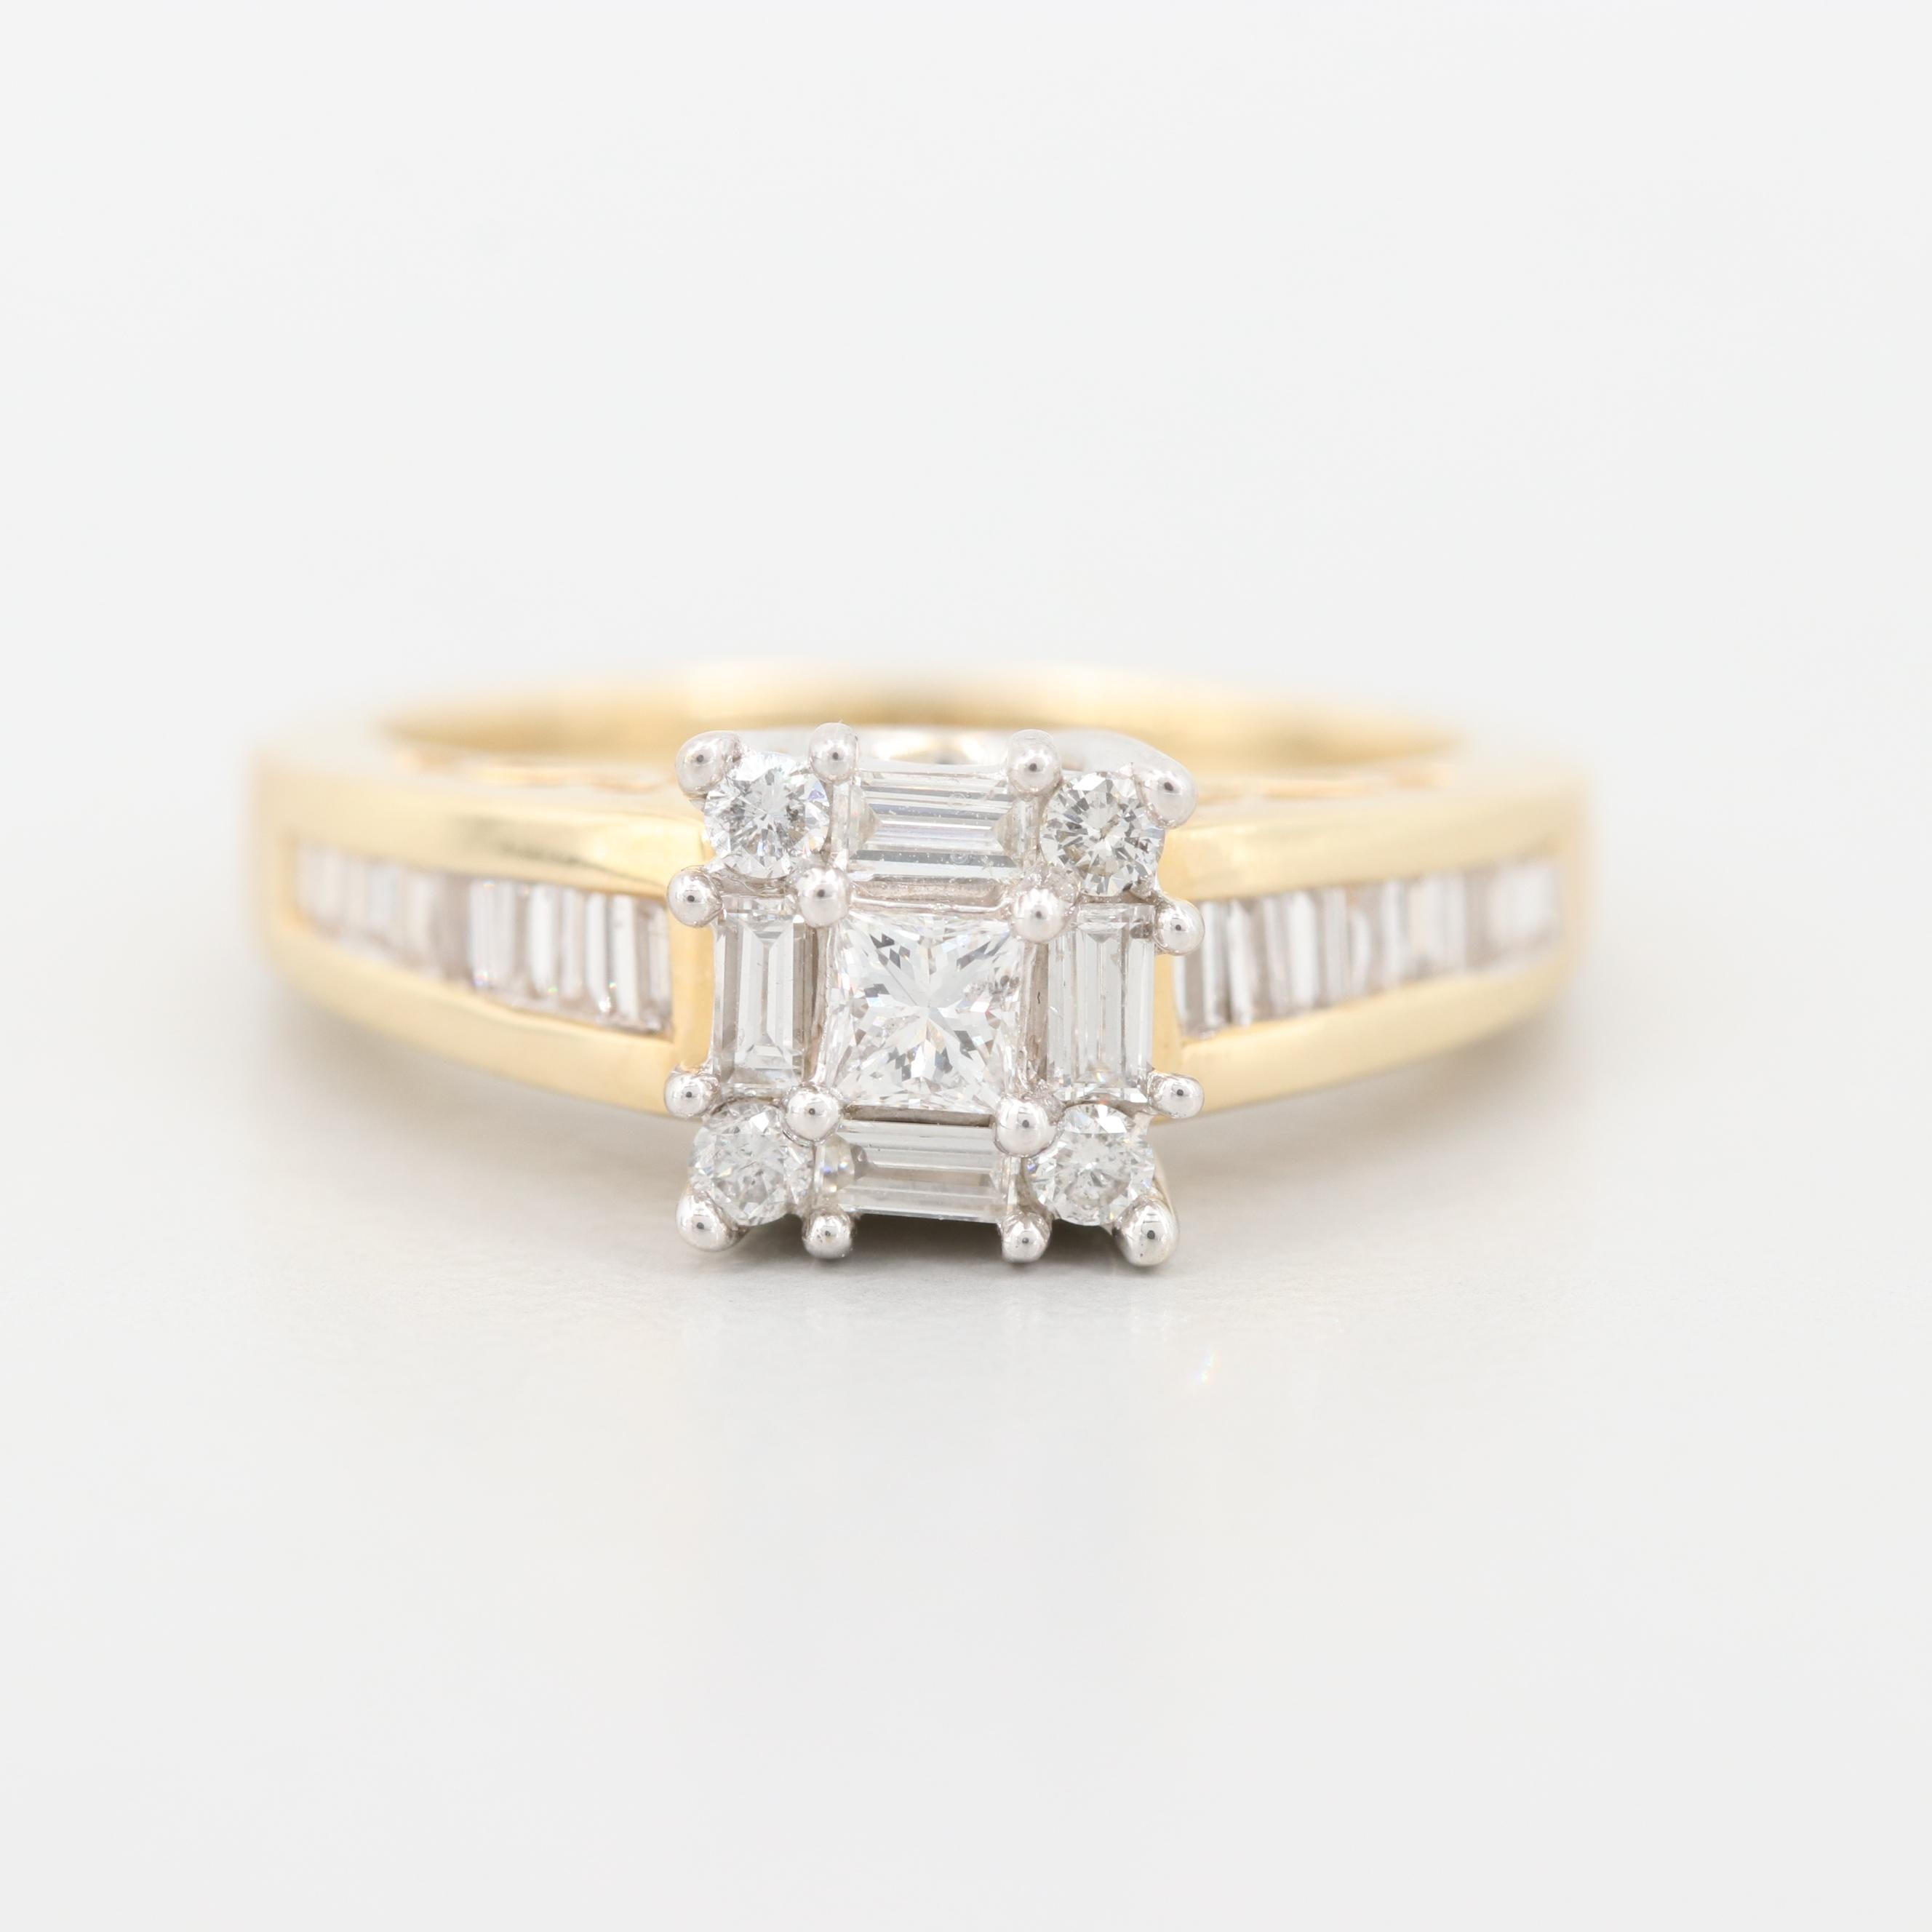 14K Yellow Gold 1.02 CTW Diamond Ring with White Gold Accents